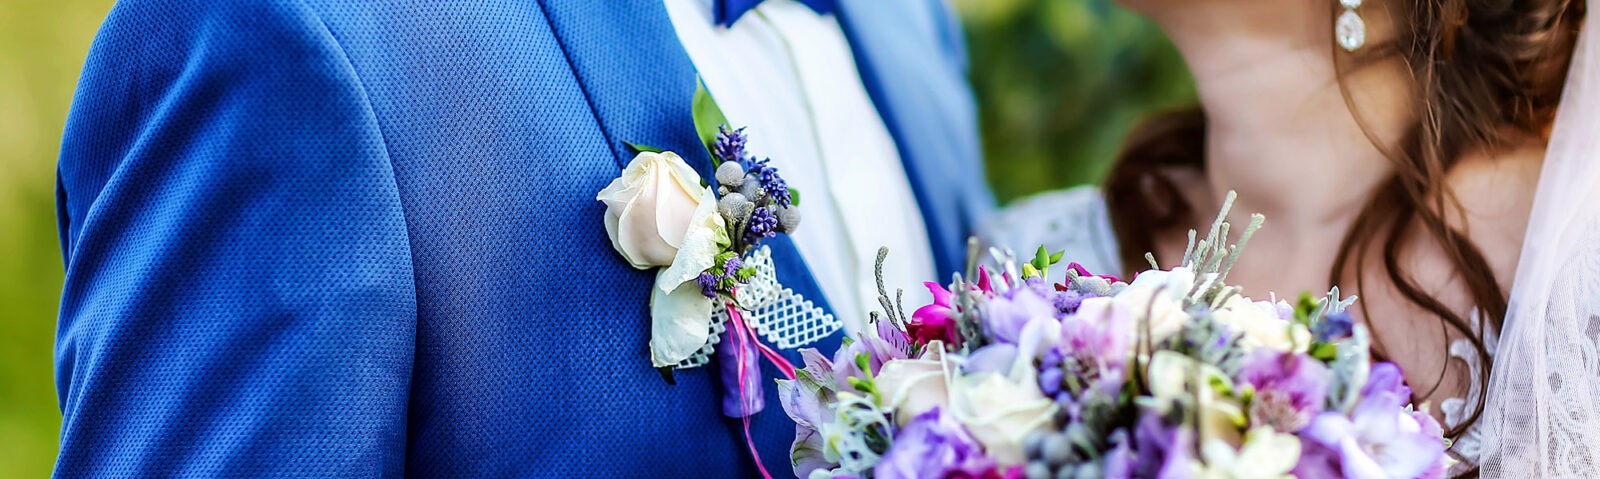 A bust shot of a married couple with a bouquet of flowers in the foreground